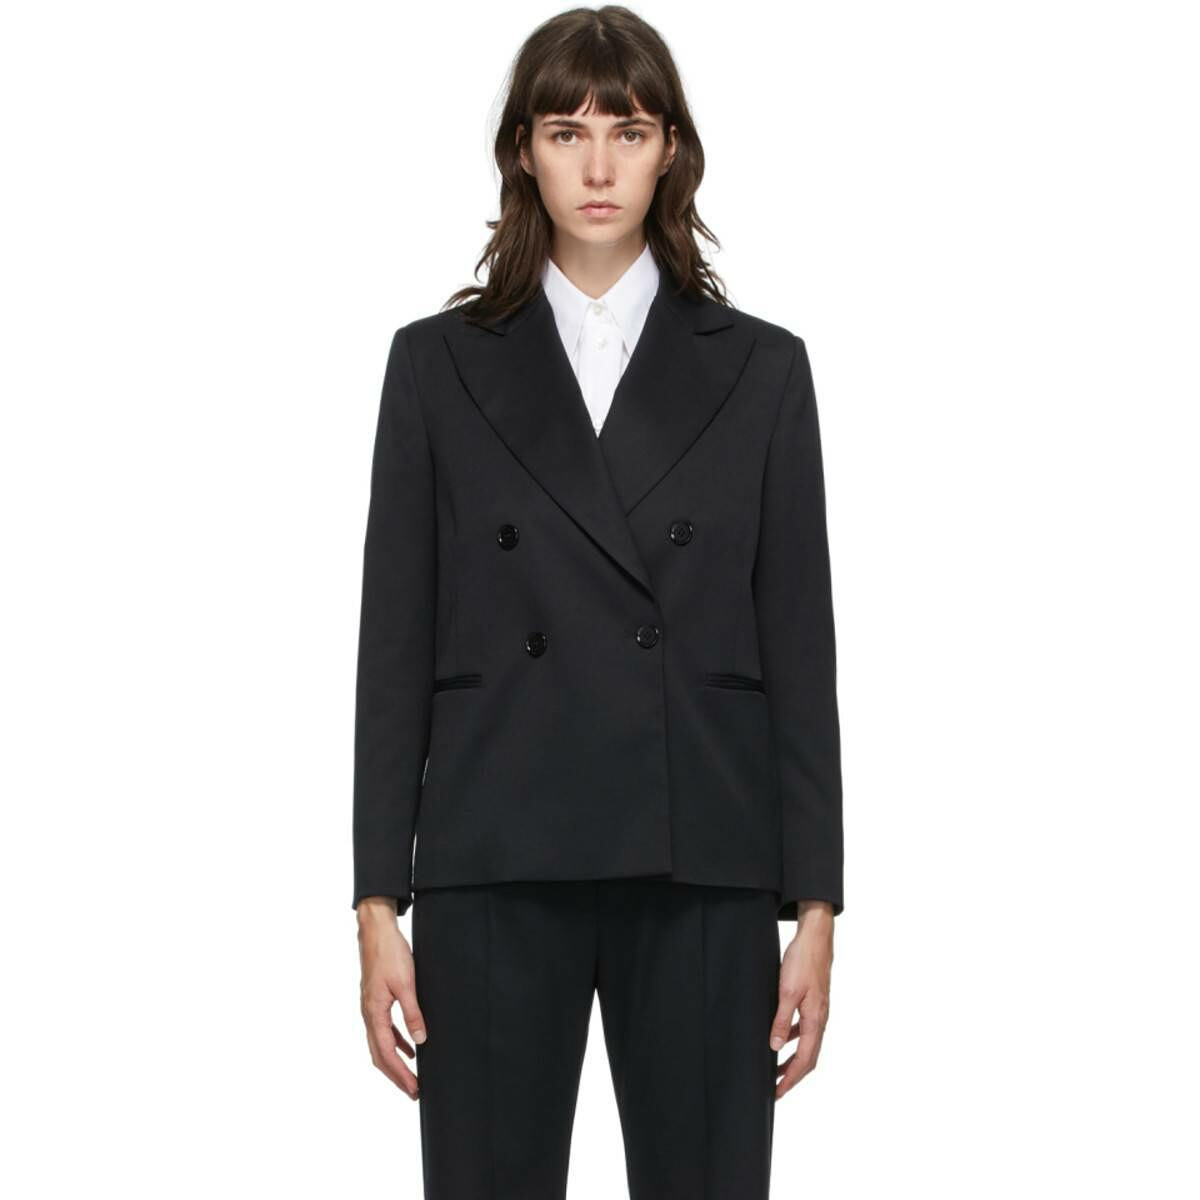 MM6 Maison Margiela Black Wool Blazer Ssense USA WOMEN Women FASHION Womens BLAZER